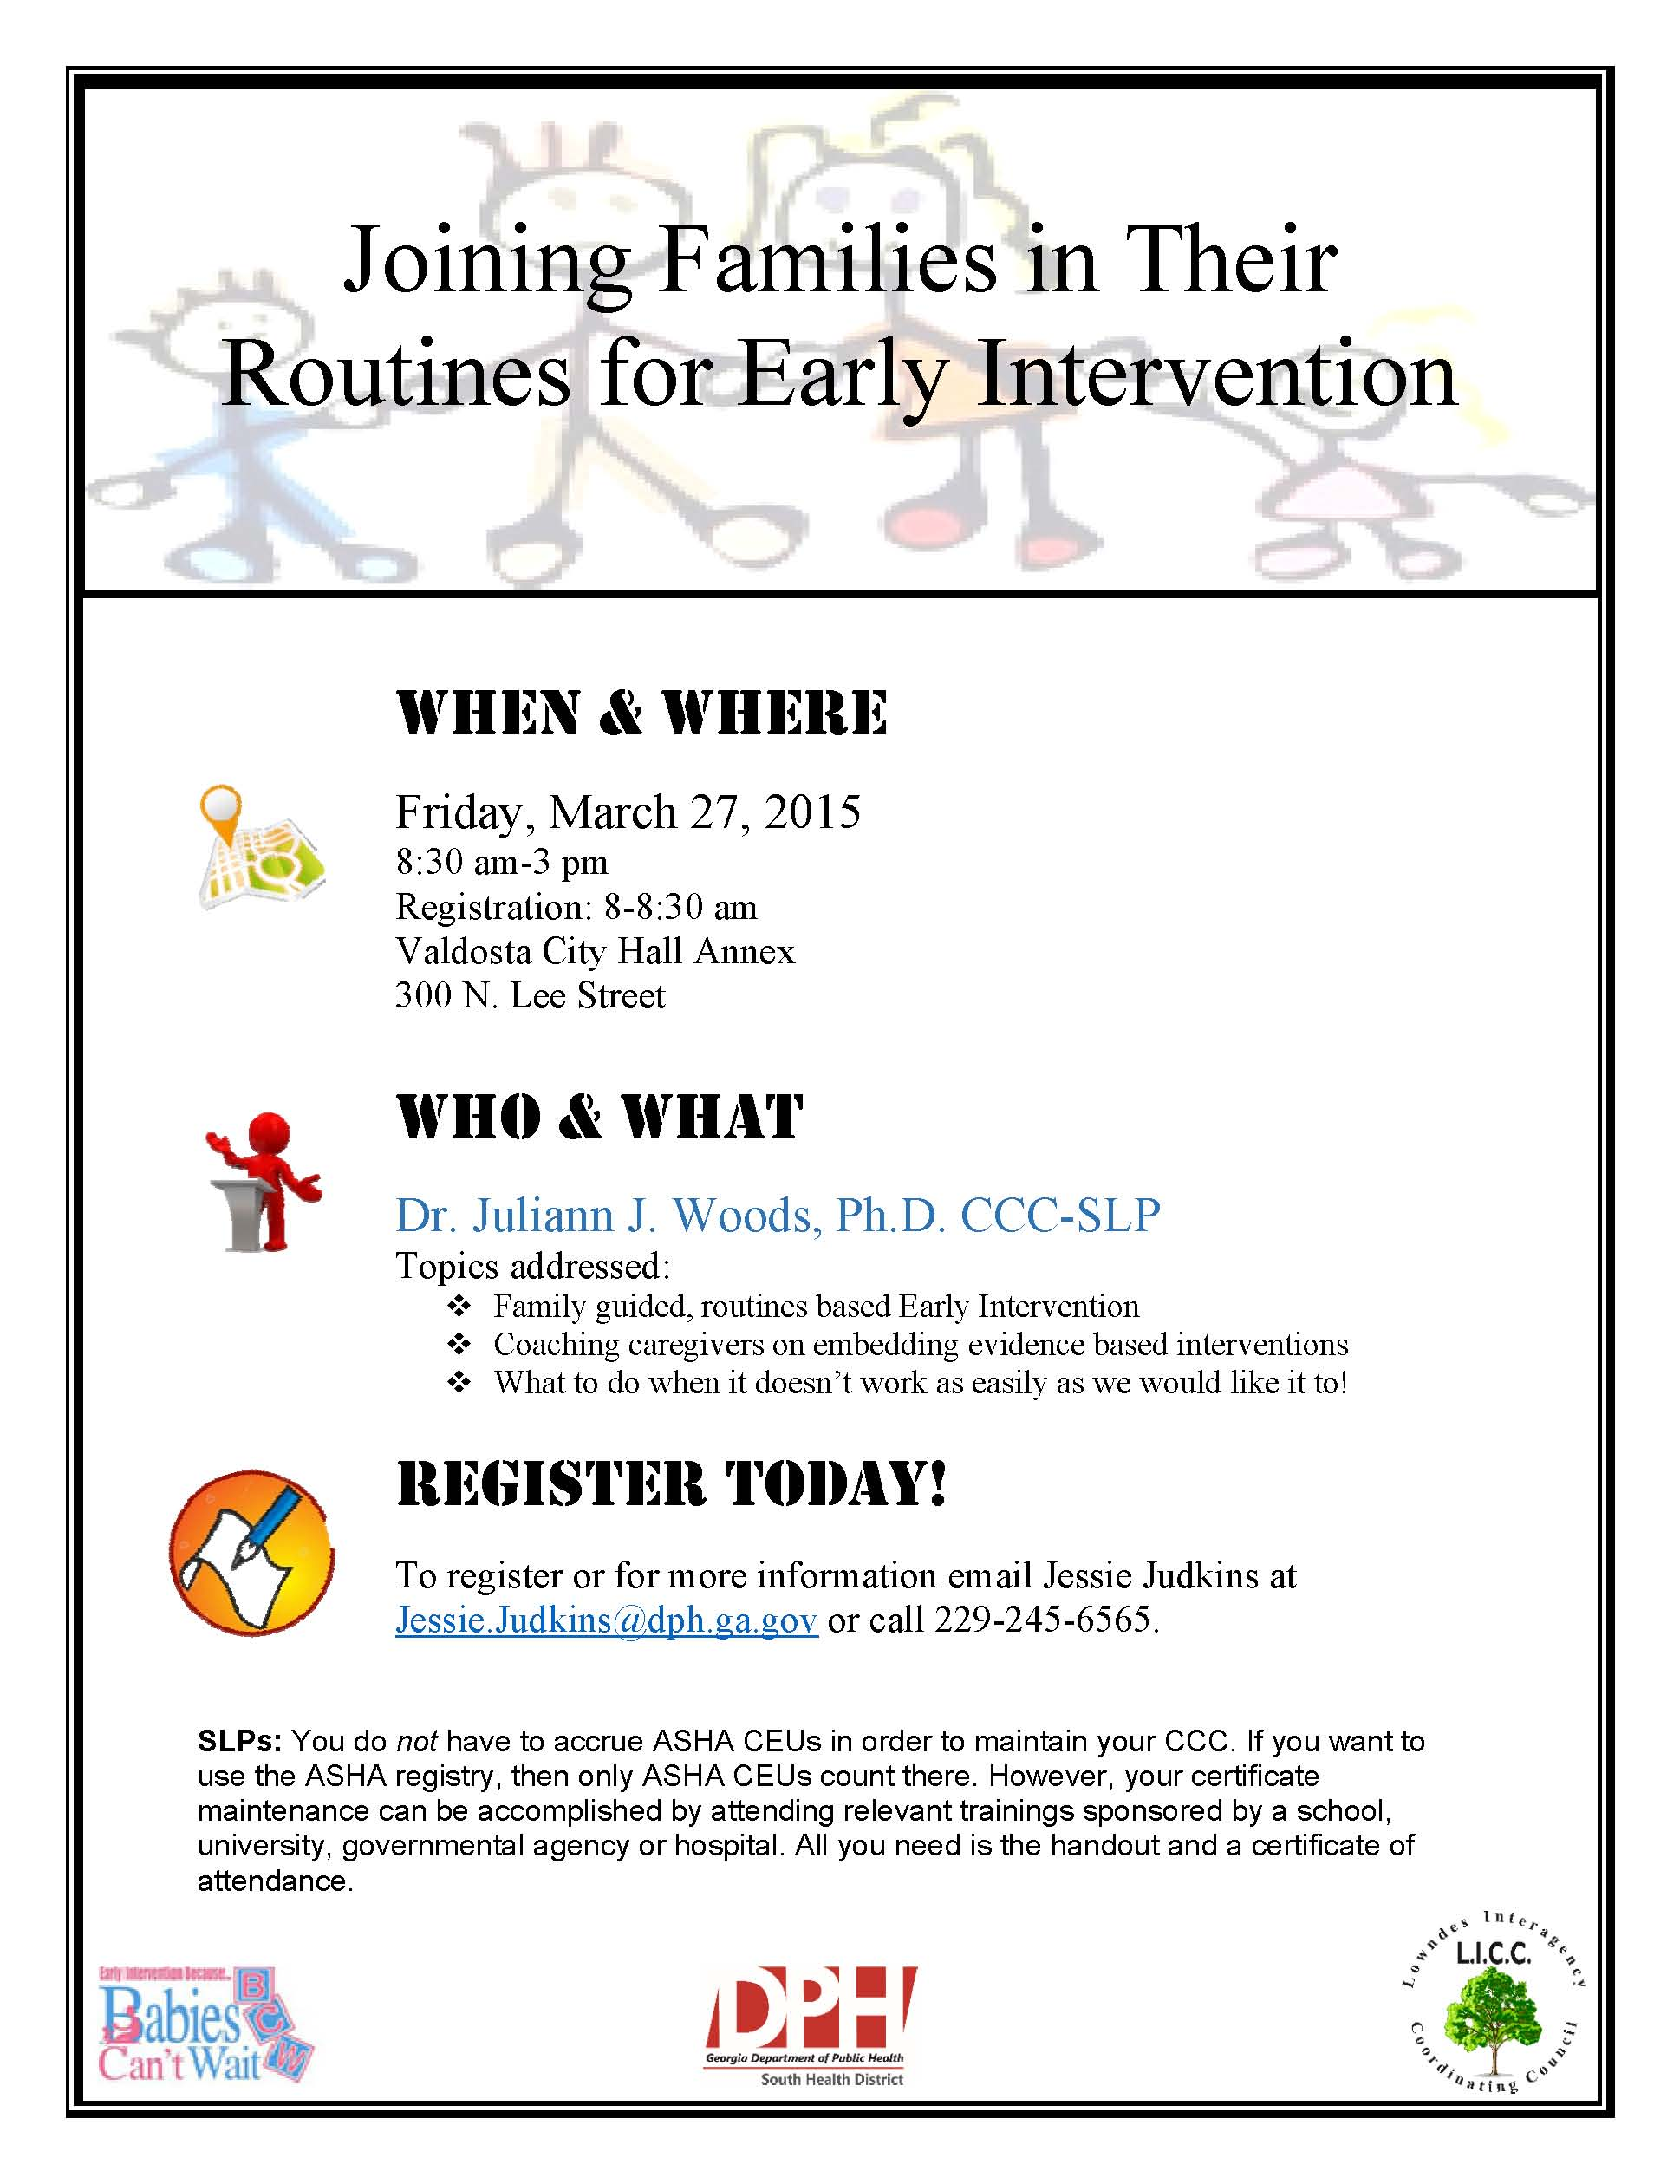 family guided routines based intervention